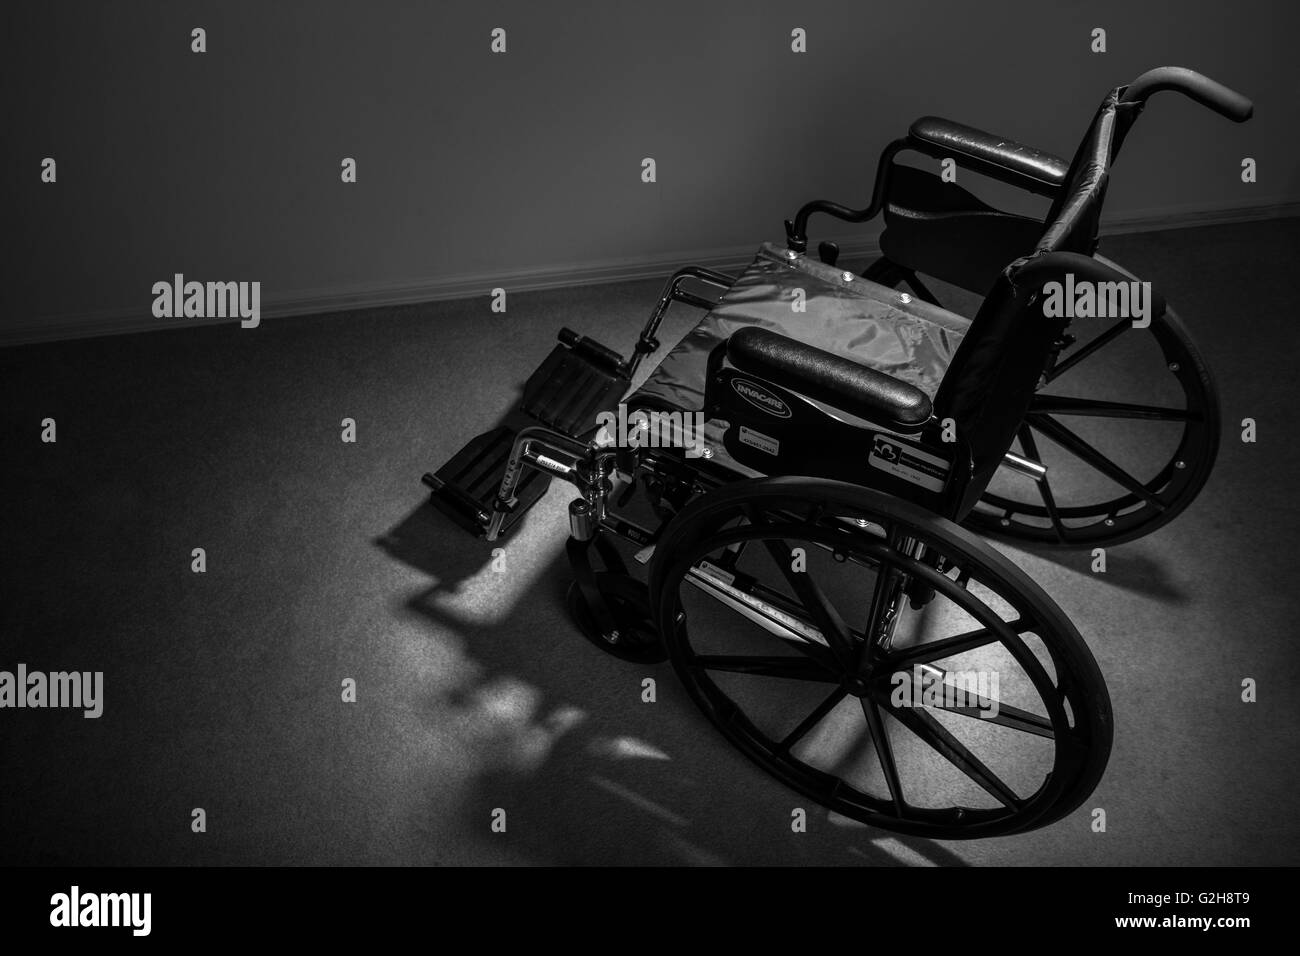 Wheelchair facing away, reinforcing the feeling of isolation and depression that can be associated with personal - Stock Image